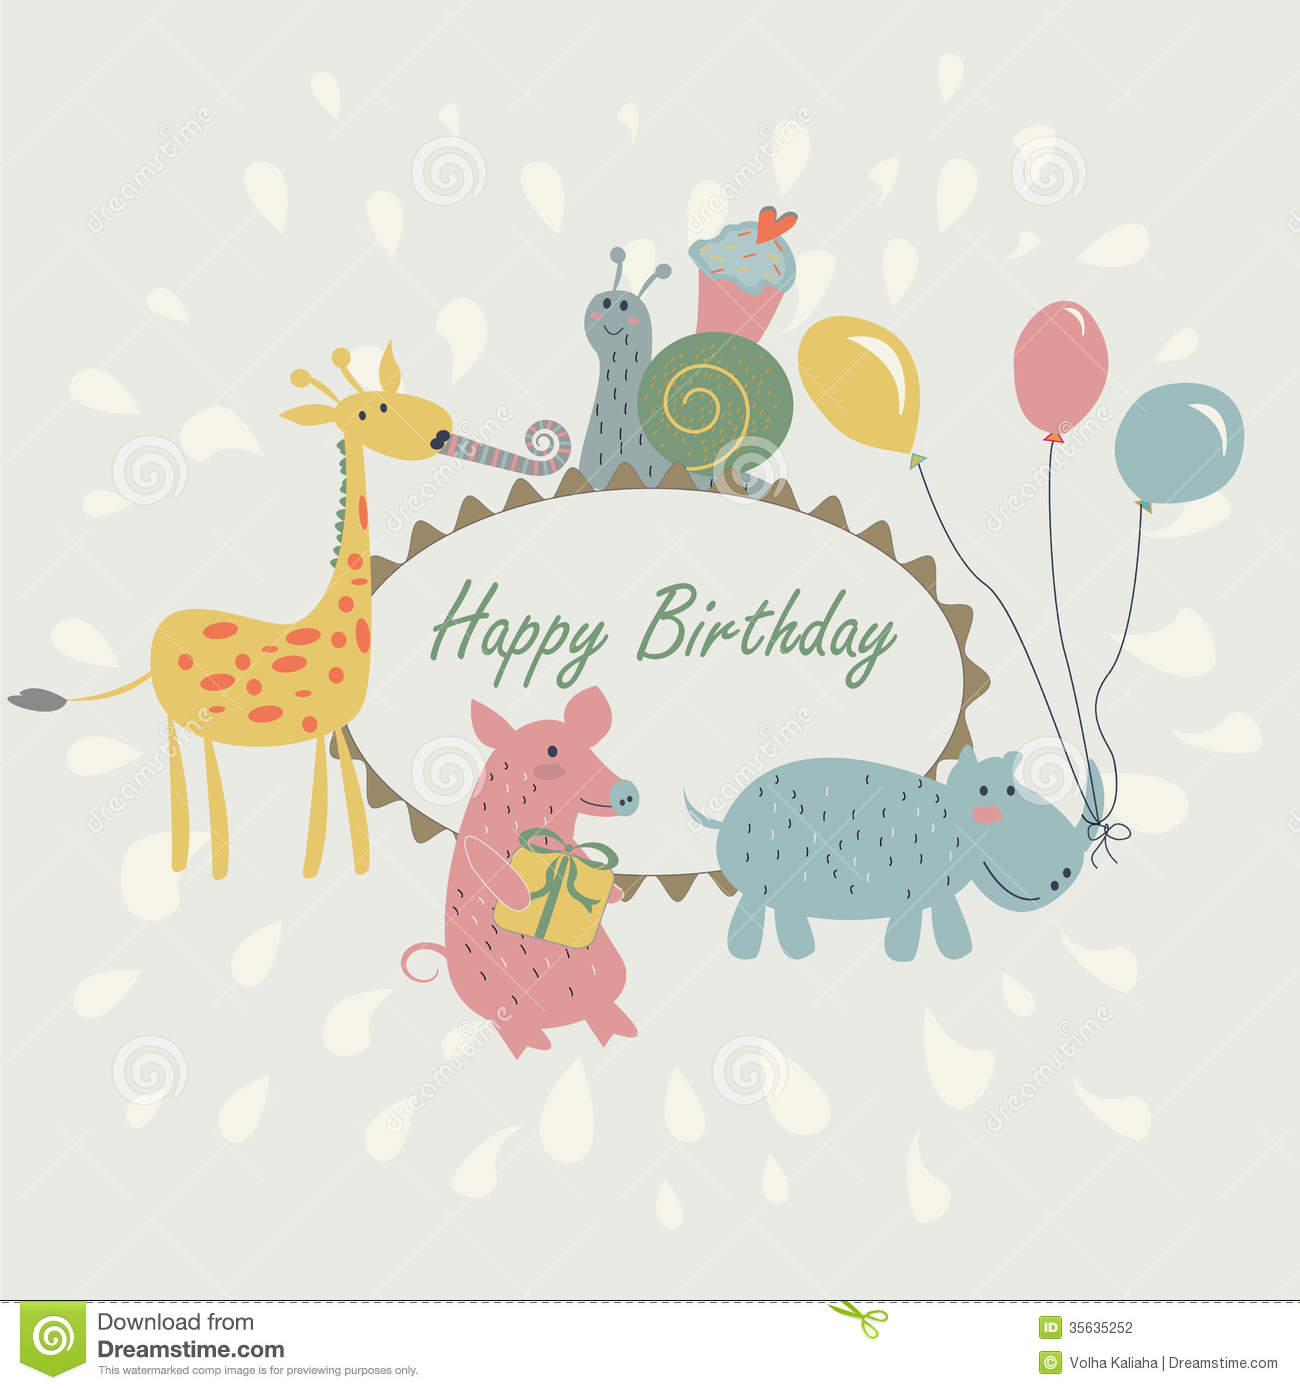 Happy birthday greeting card stock vector illustration of design happy birthday greeting card kristyandbryce Gallery